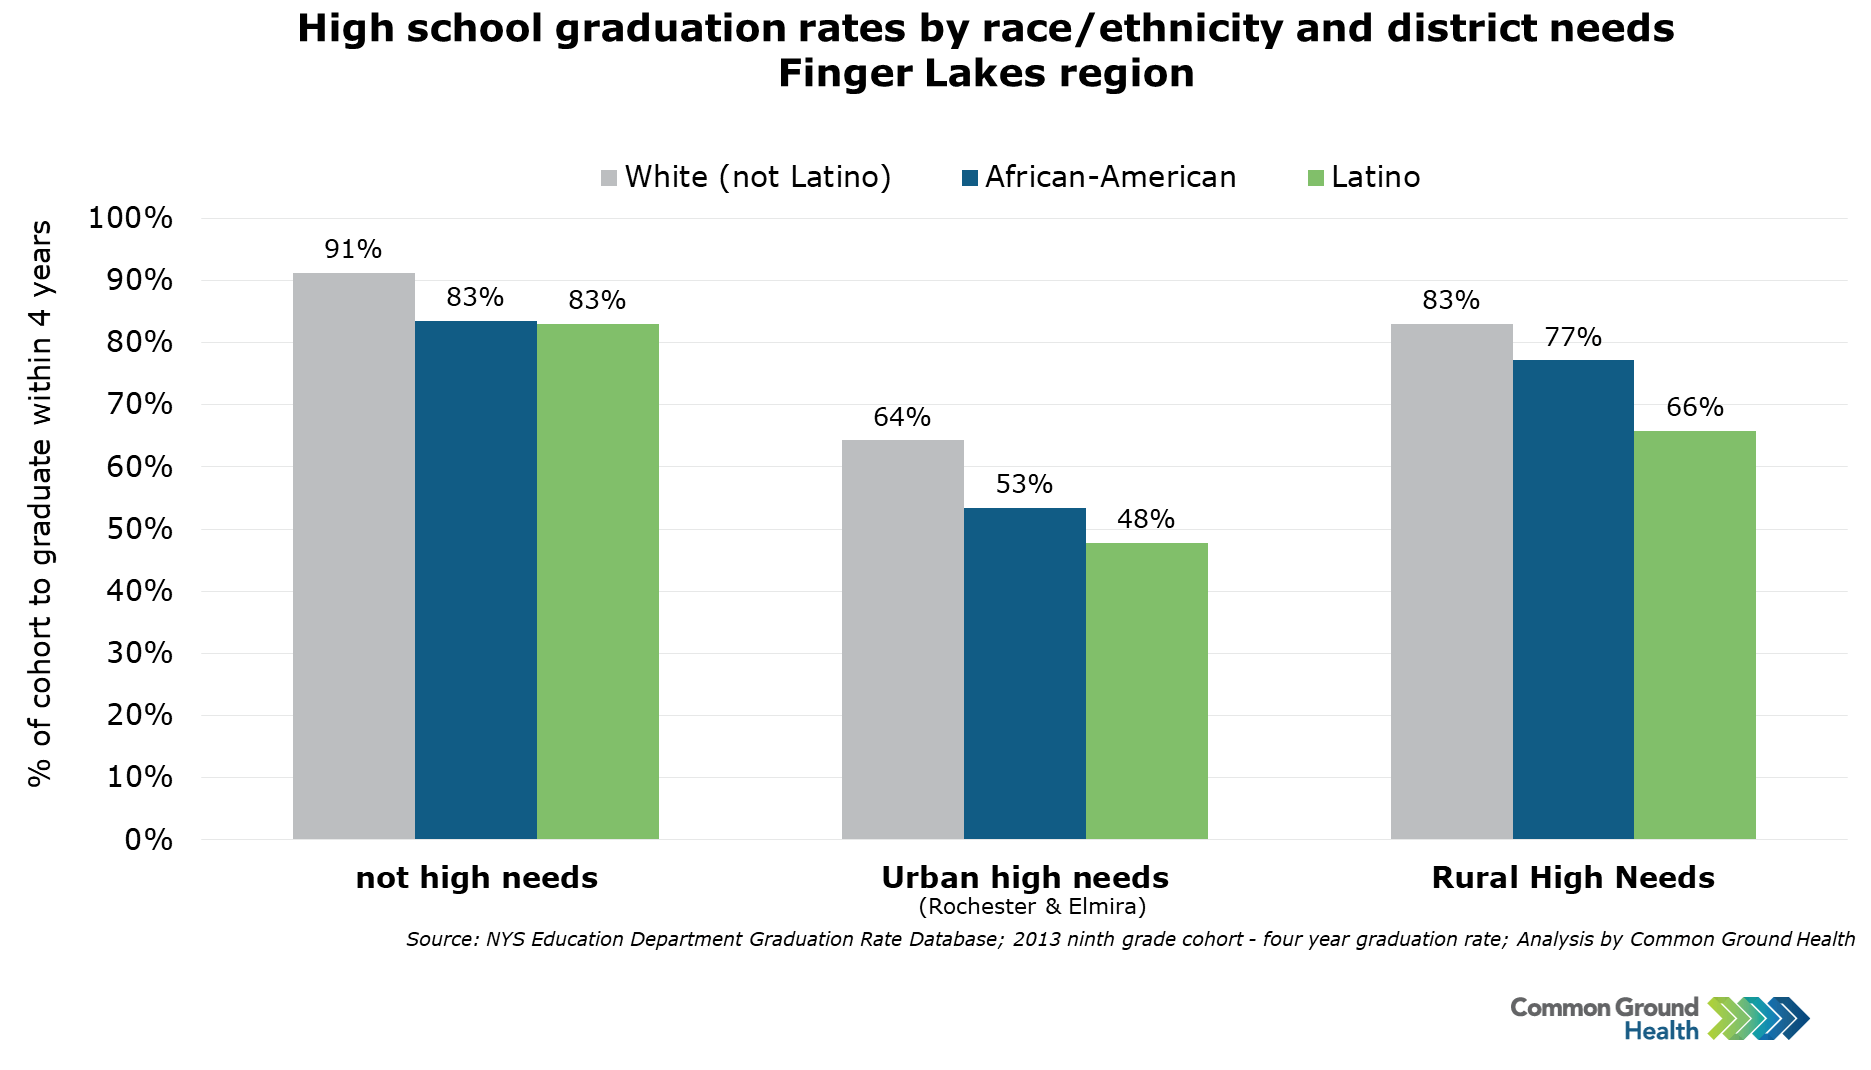 High School Graduation Rates by Race/Ethnicity and District Needs - New York Finger Lakes Region